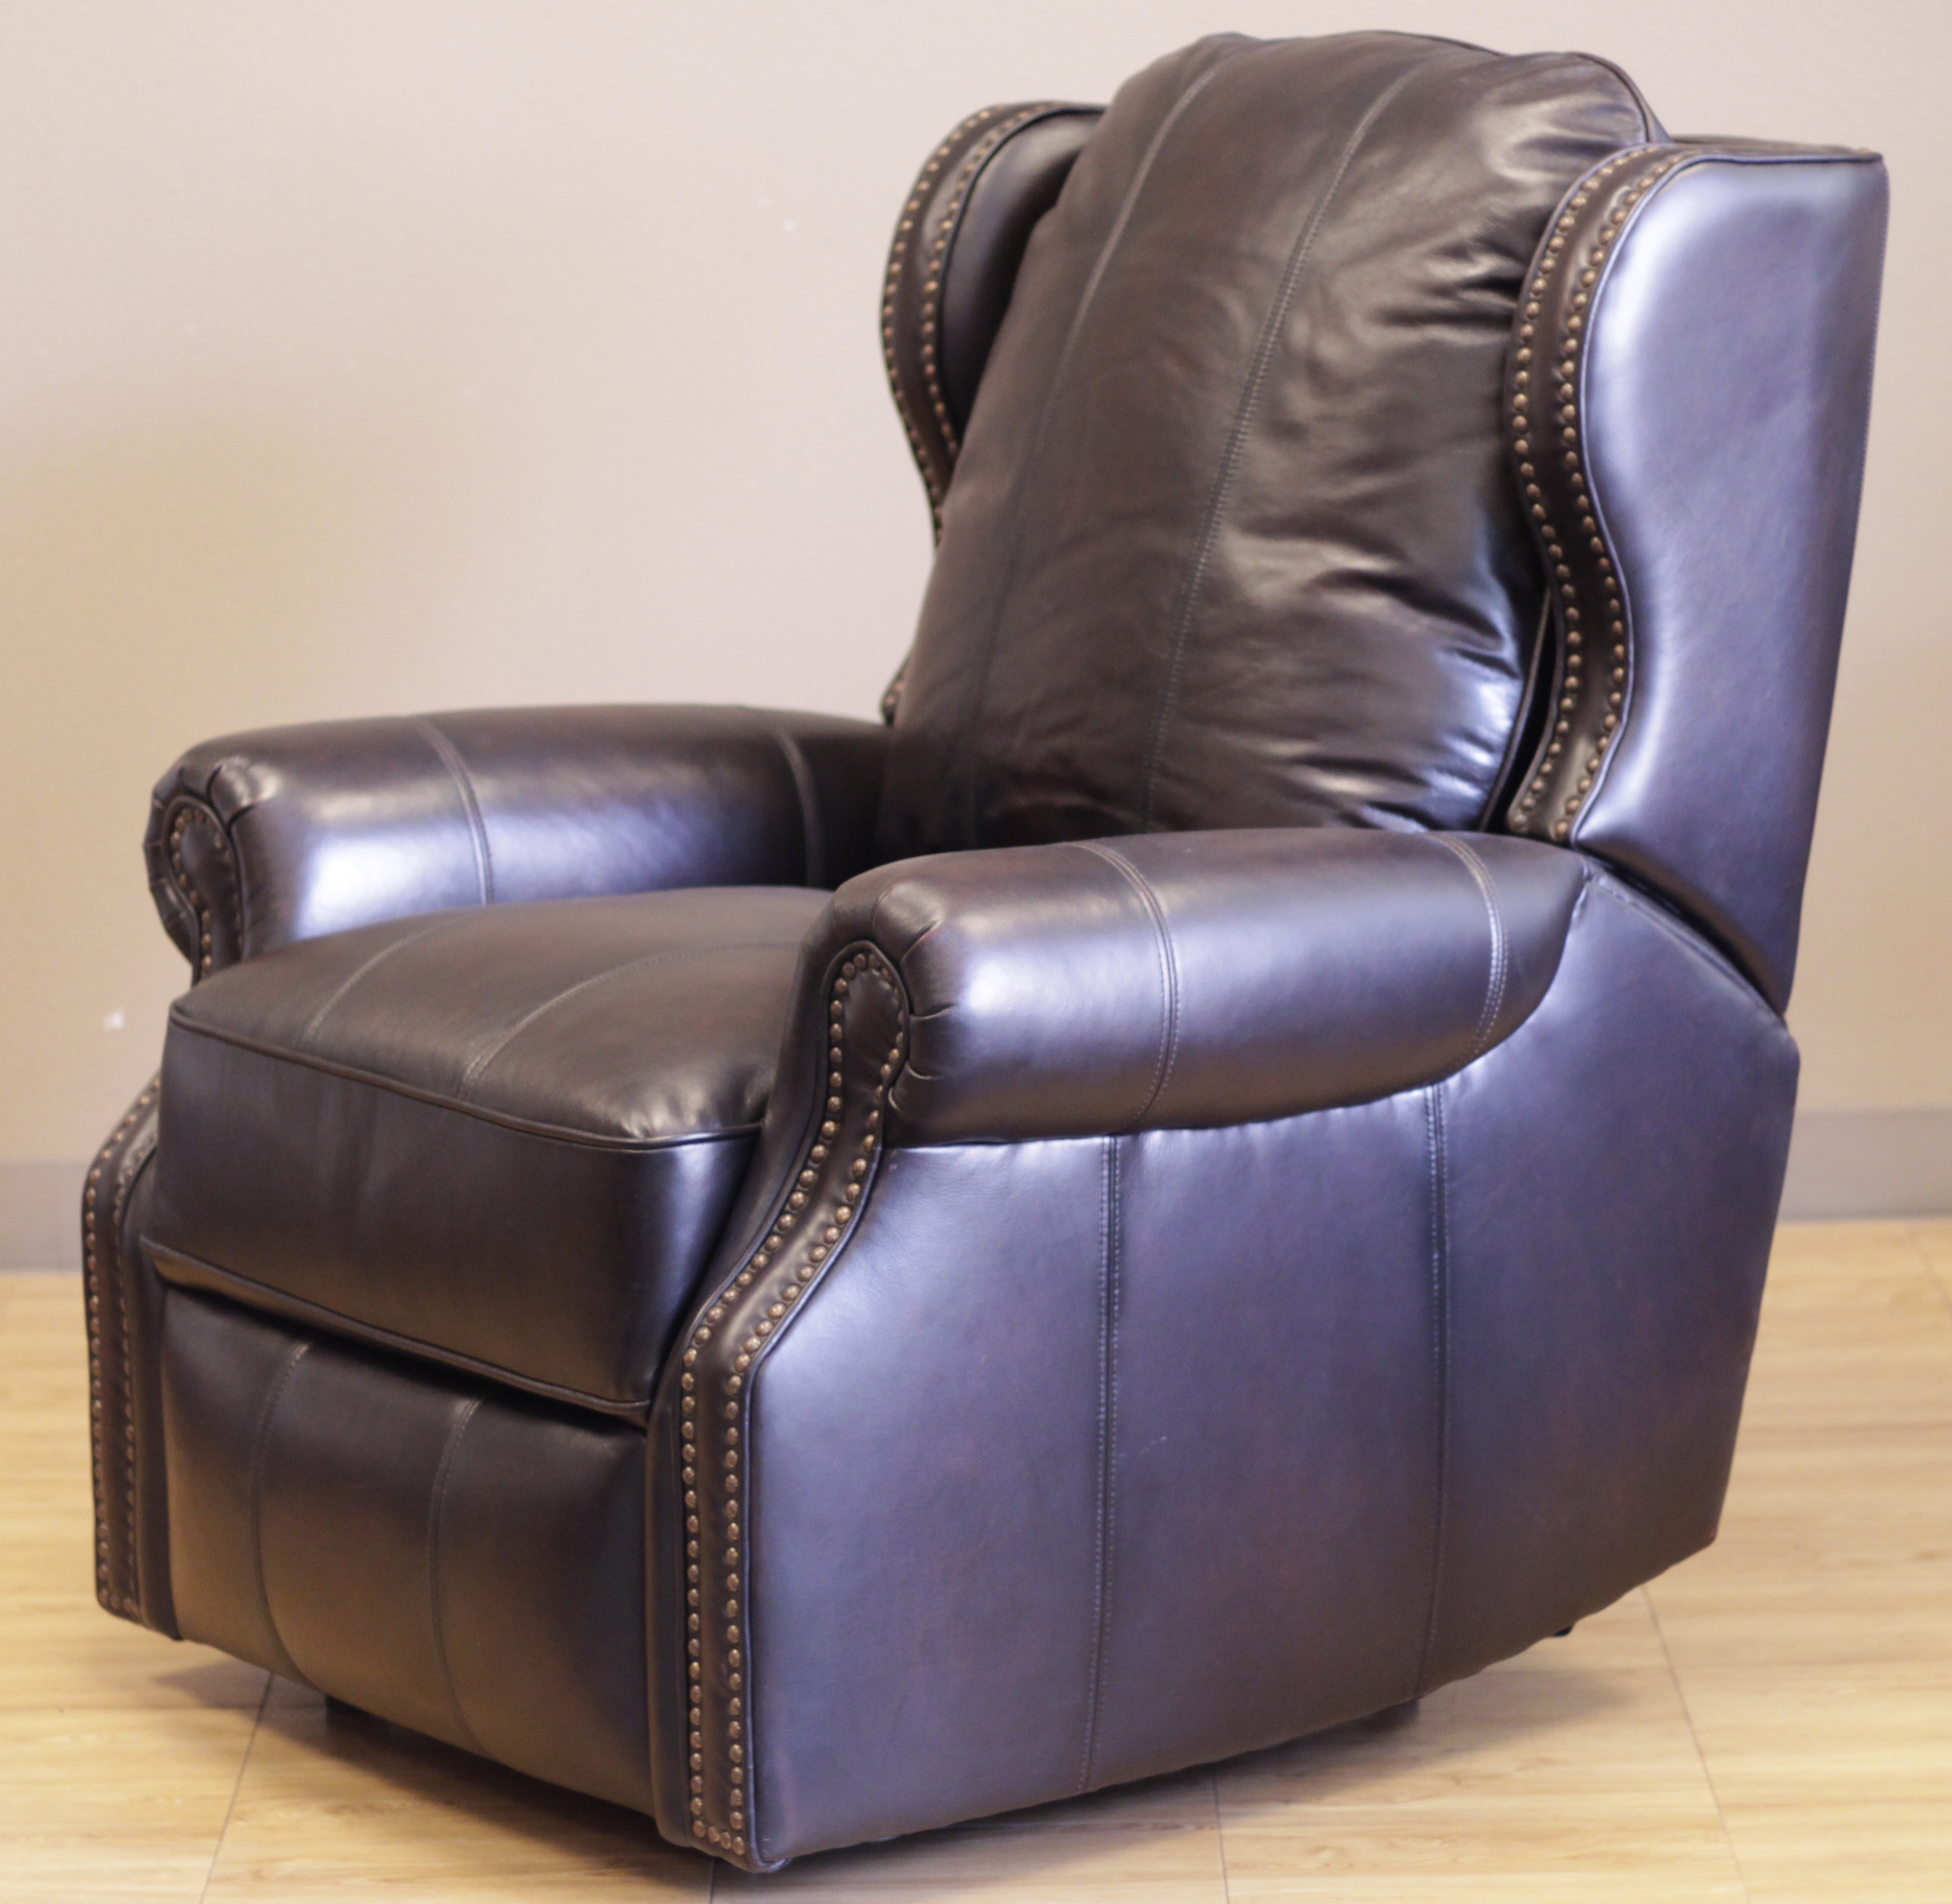 Barcalounger Bristol II Recliner Chair Pearlized Black Leather